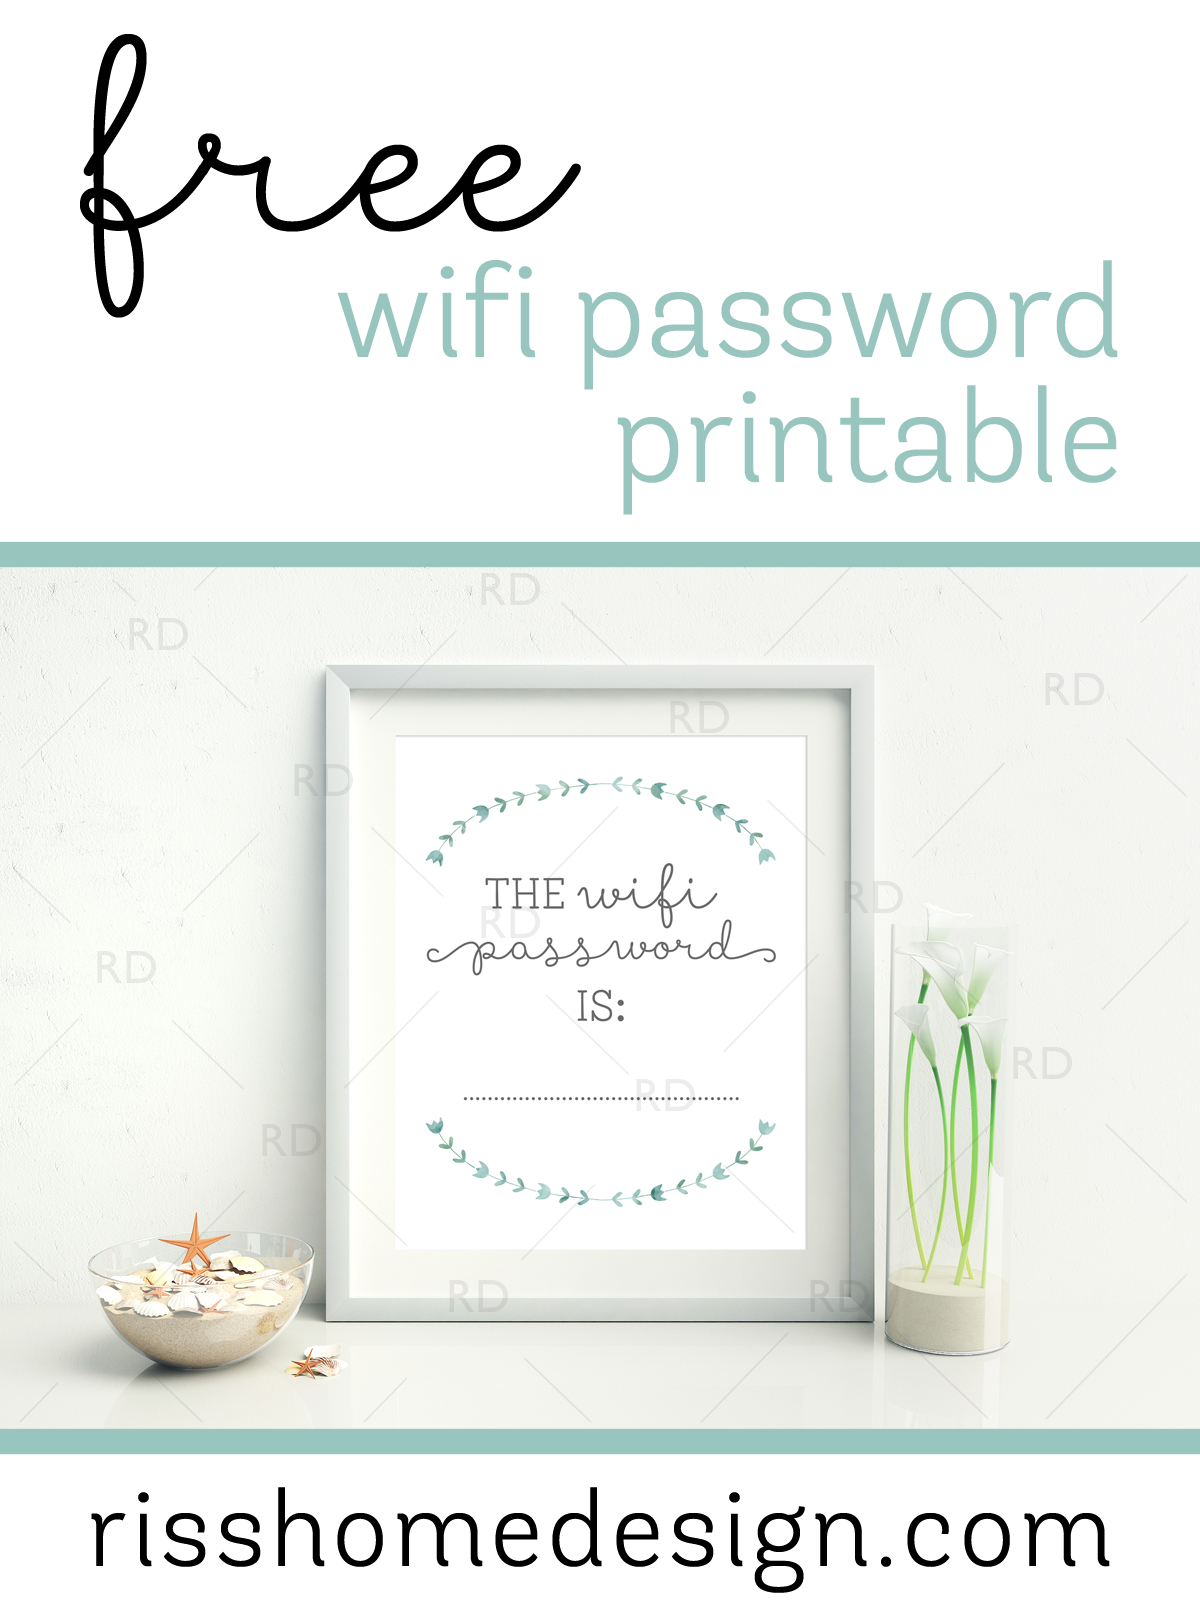 Free Wifi Password Printable For Your Home! Awesome To Display In A - Free Wifi Password Printable